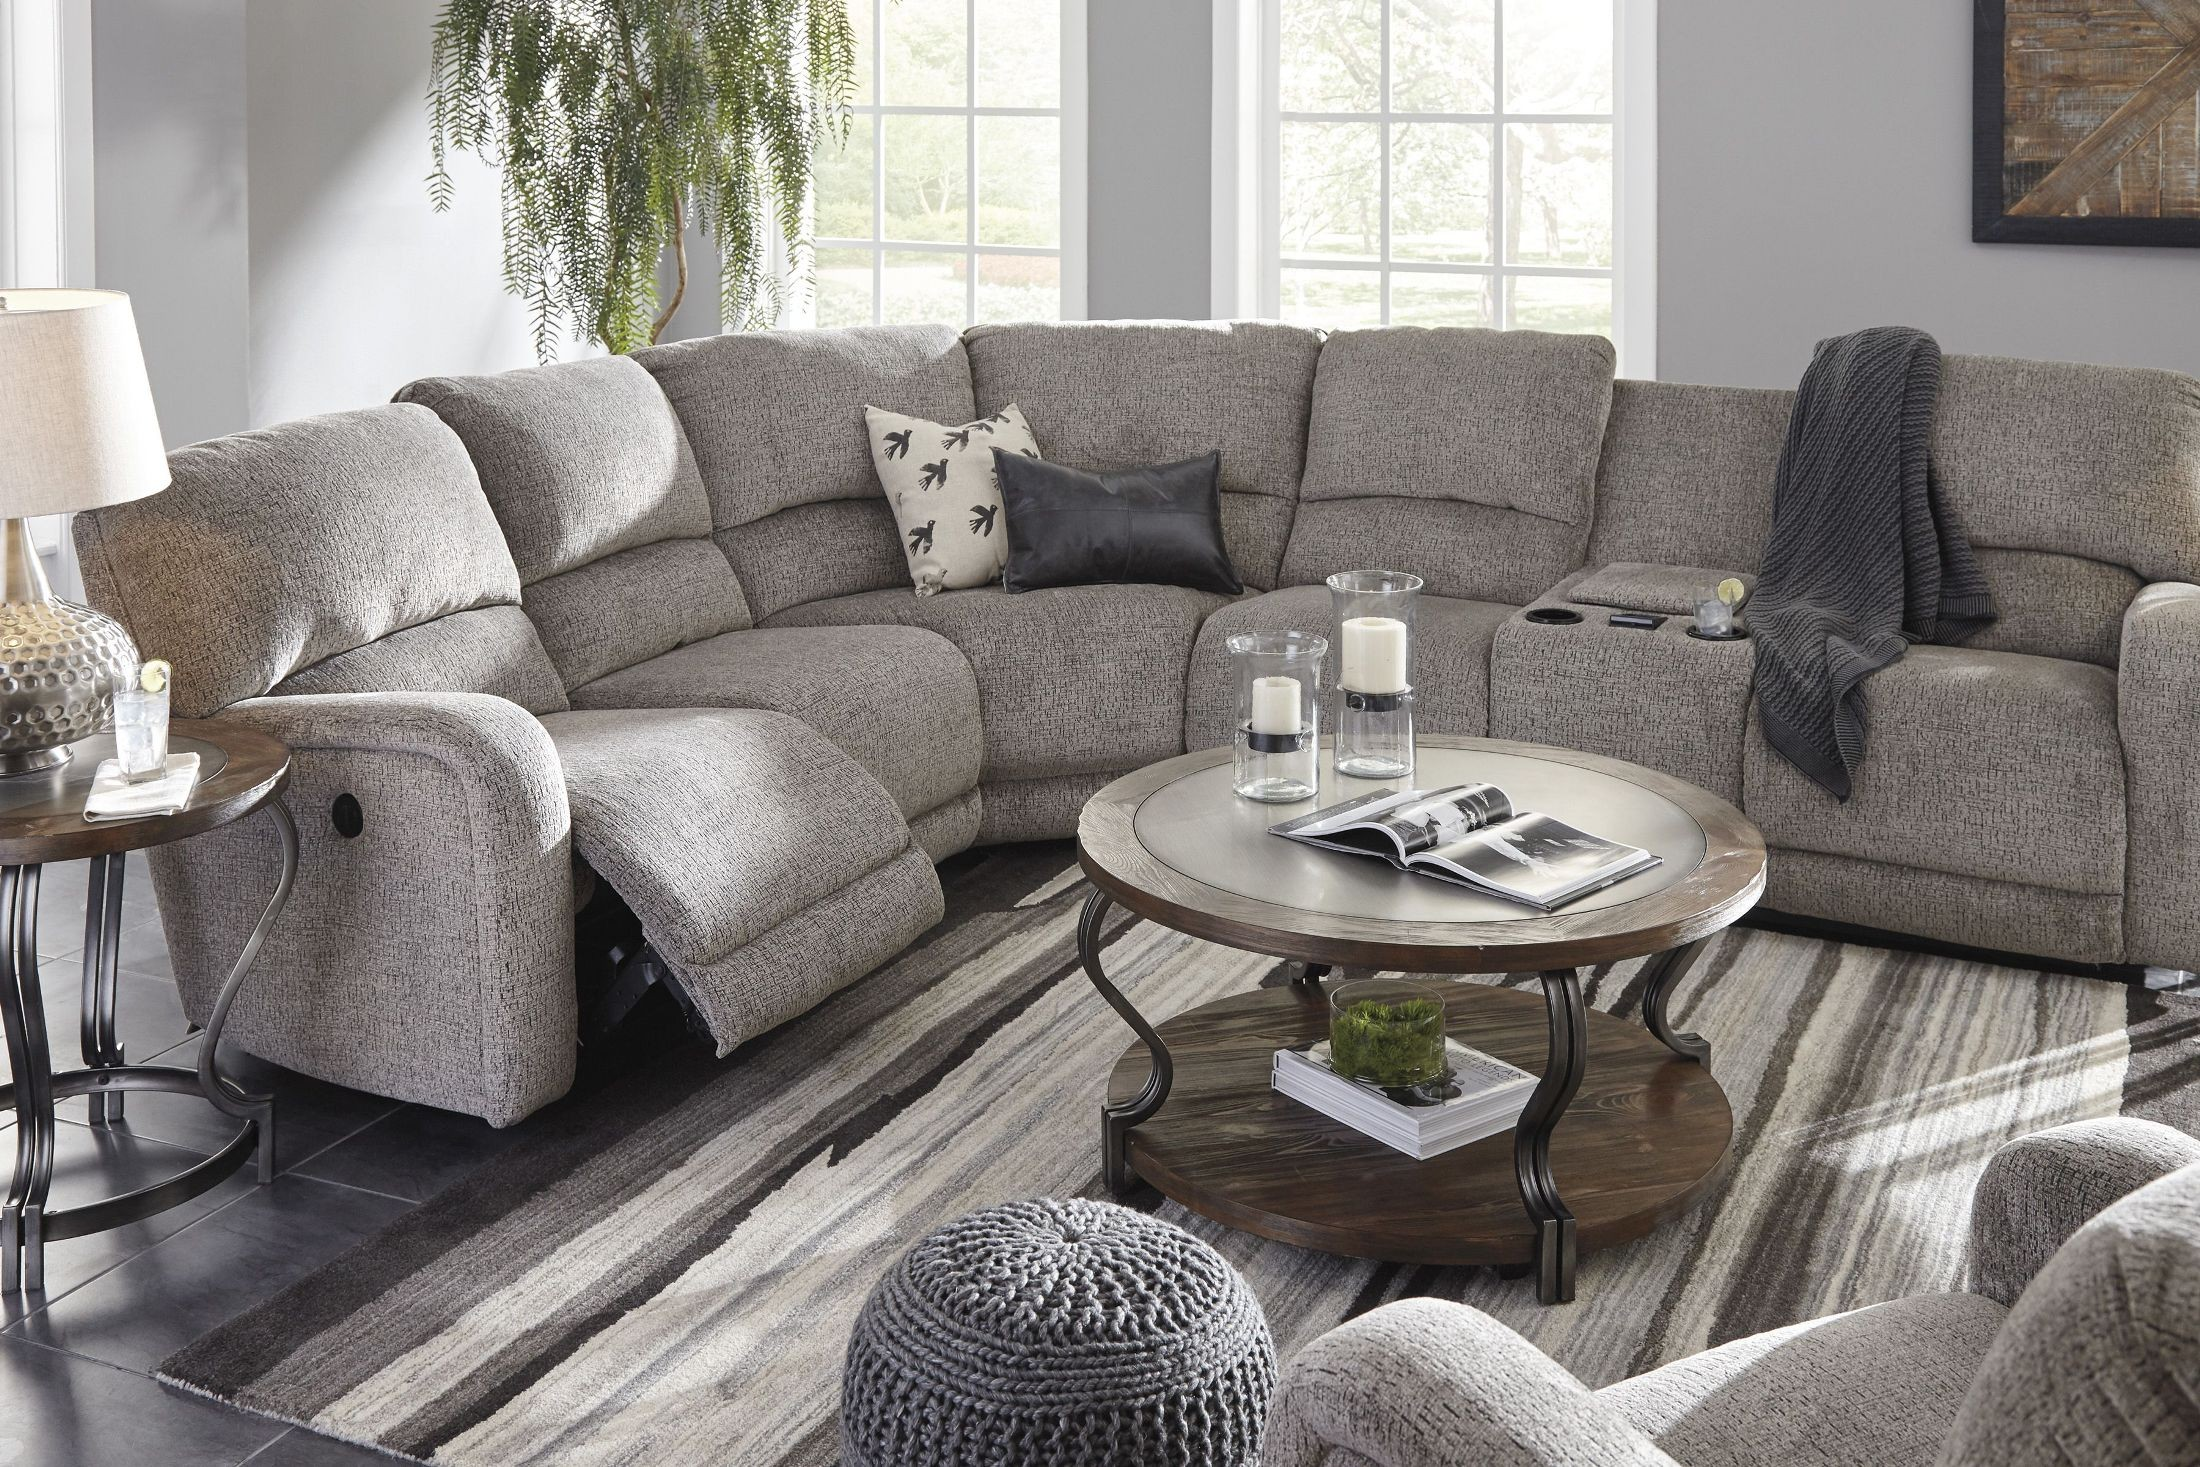 Pittsfield Fossil Laf Power Reclining Sectional 1790158 90 Ashley